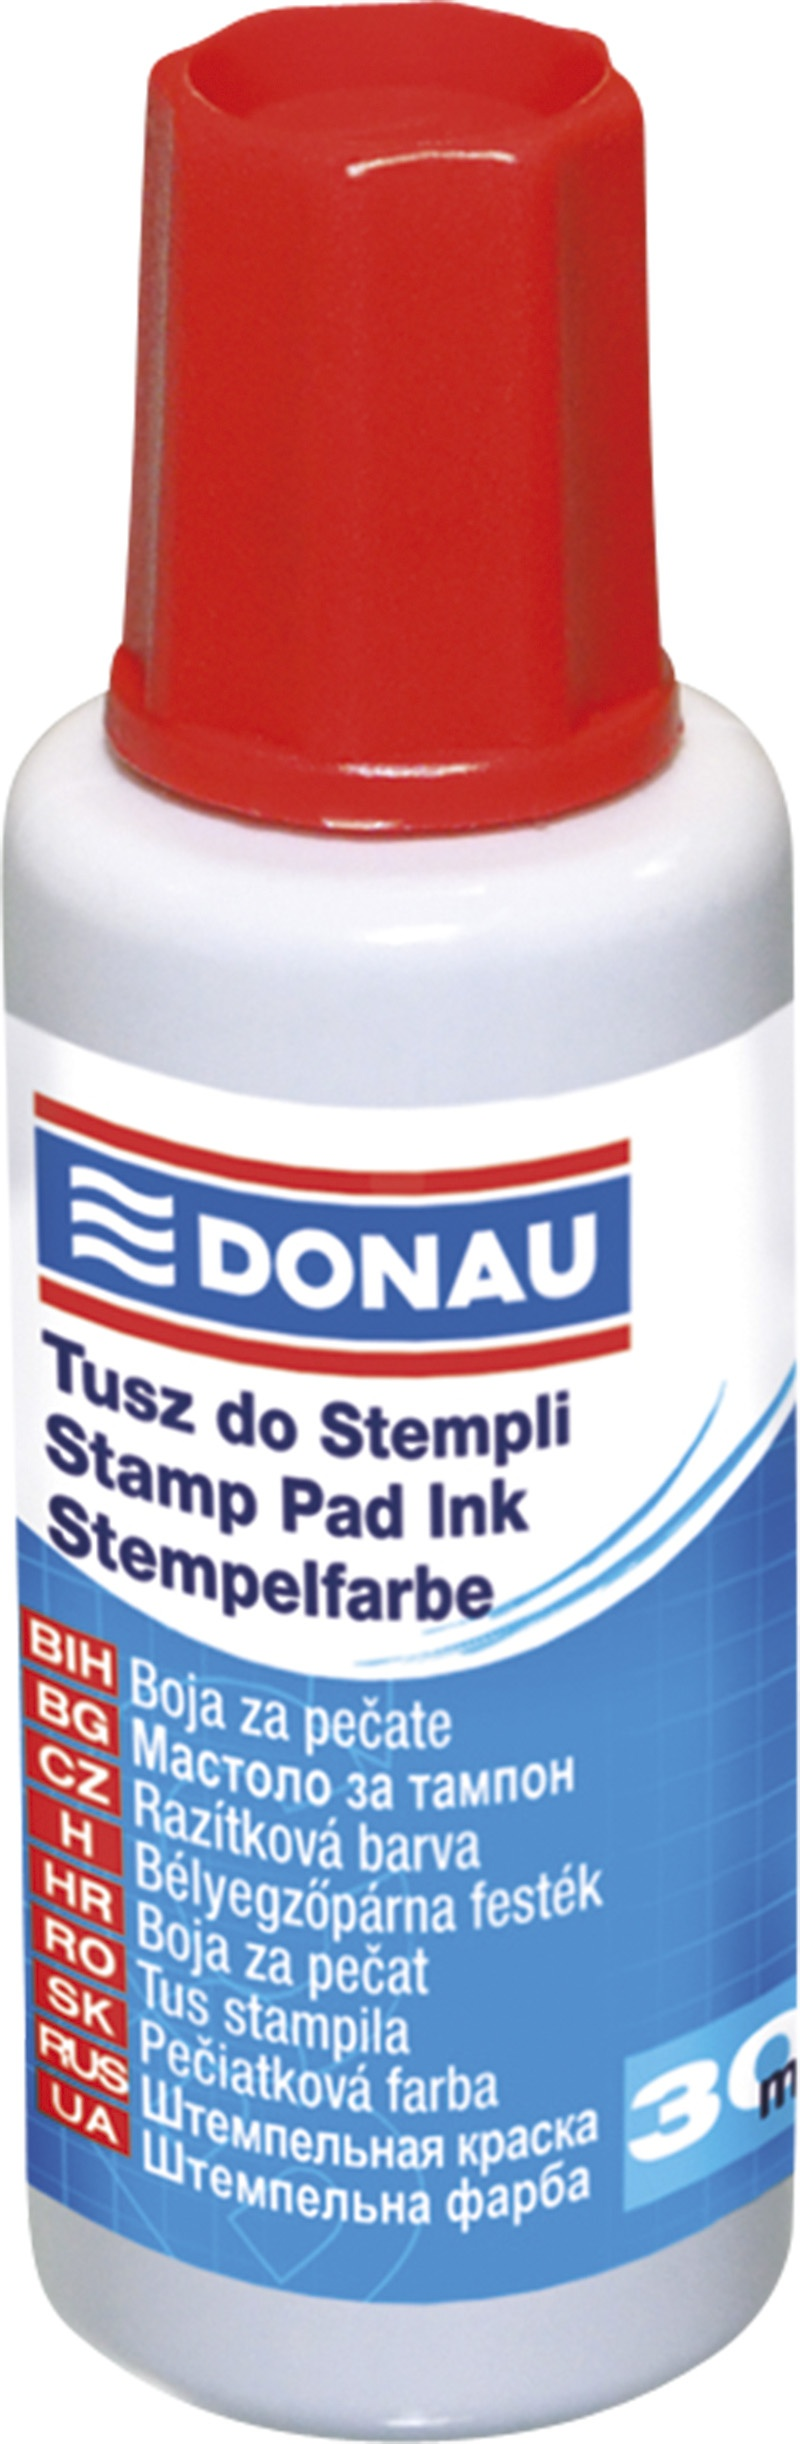 Stamp Ink DONAU, 30ml, red